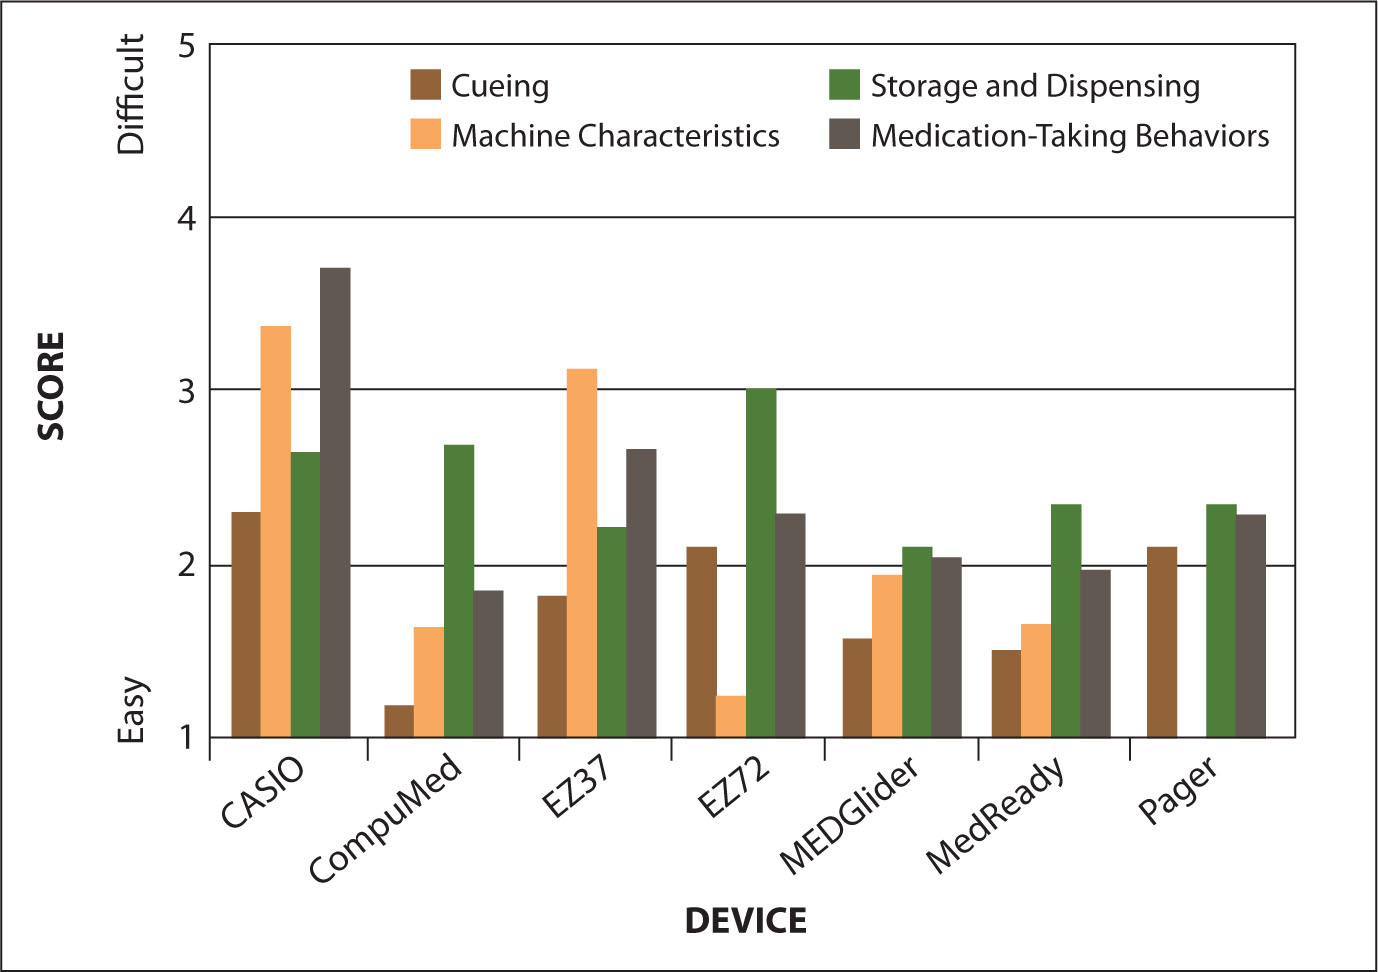 Clinician Ratings of Device Characteristics.Casio = E-Pill® Casio Vibrating 5-Alarm Clock with Pill Case; CompuMed = CompuMed Medication Reminder, Medication Dispenser; EZ37 = E-Pill 7-Day Medication Reminder and Organizer with 37 Daily Alarms; EZ72 = E-Pill EZ72 Medication Reminder and Organizer; MEDGlider = E-Pill MEDGlider Medication Manager System (weekly Version); MedReady = MedReady Automated Medication Dispenser; Pager = E-Pill Pager Vibrating 12-Alarm Medication Reminder.